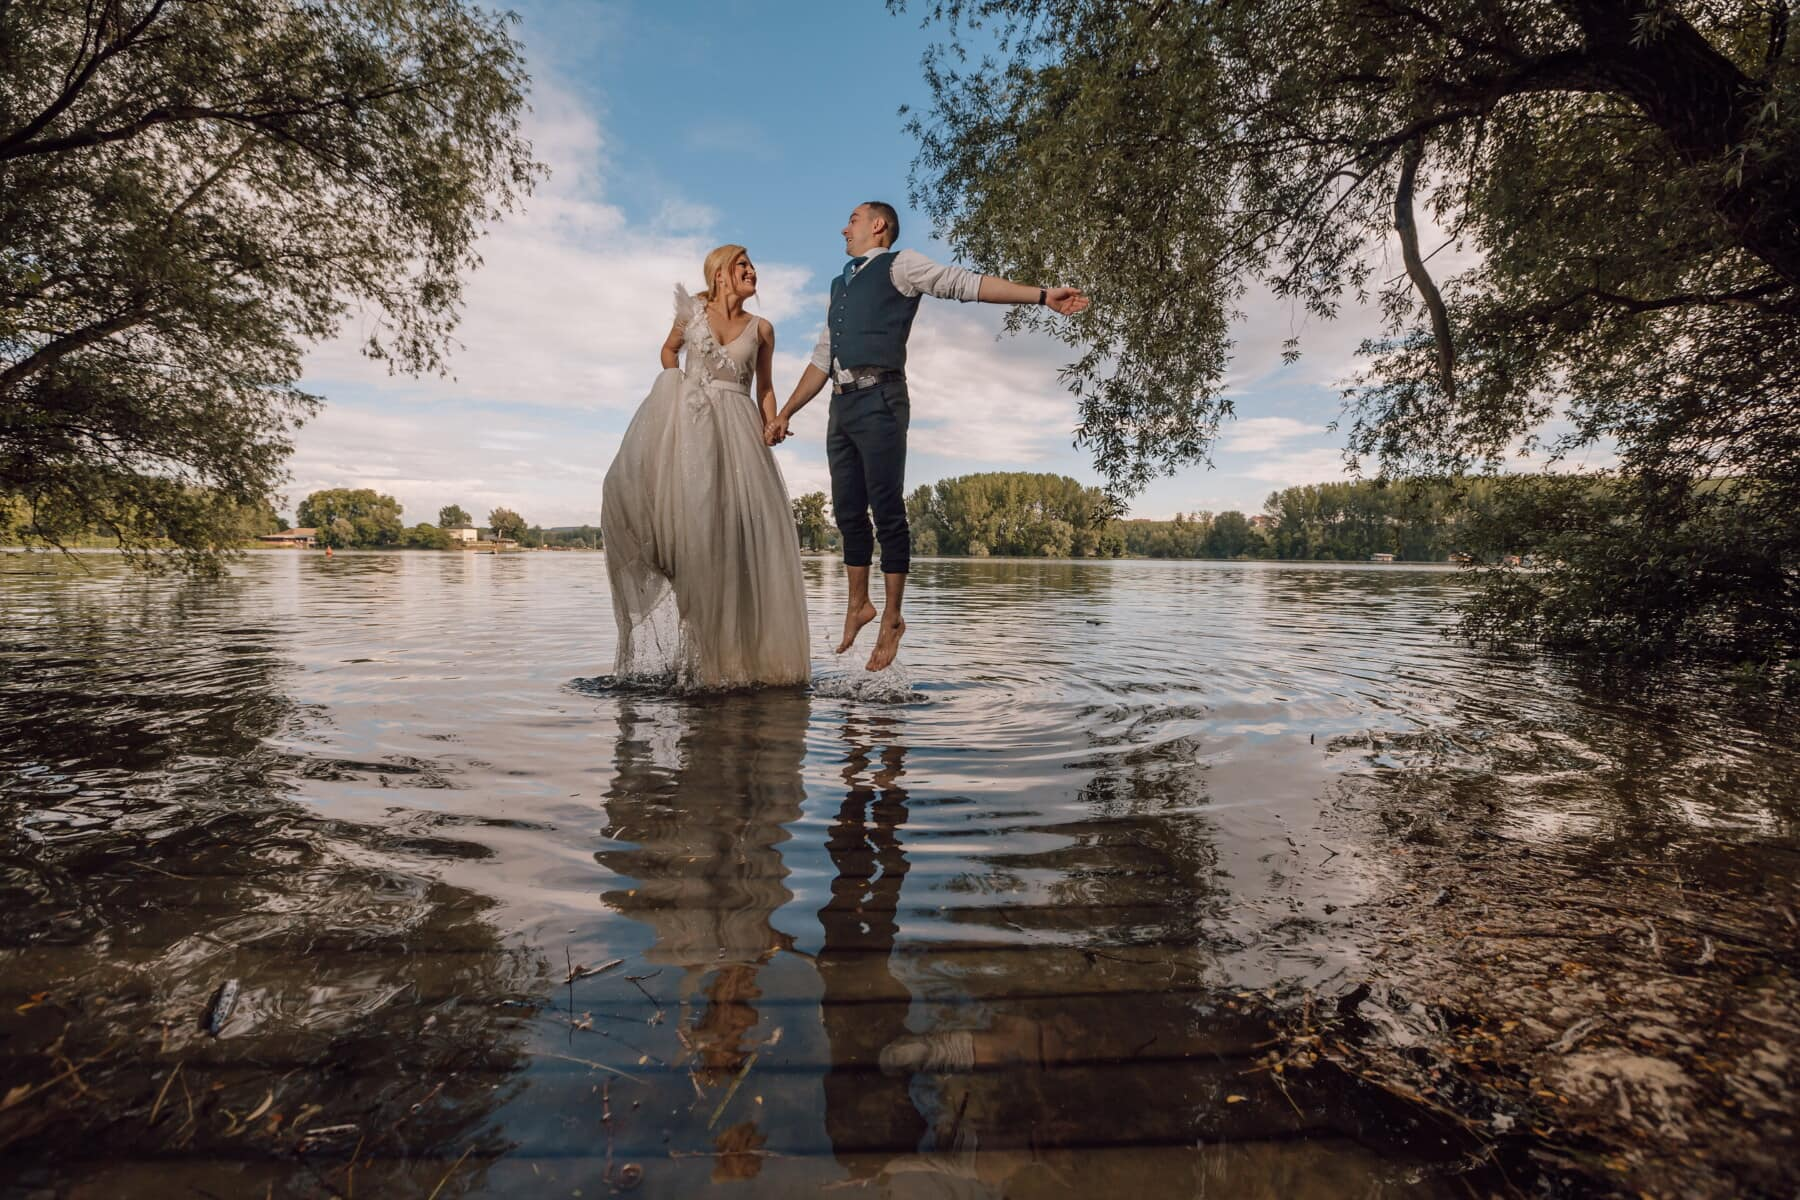 groom, jump, joy, waterdrop, bride, water, girl, wedding, lake, sunset